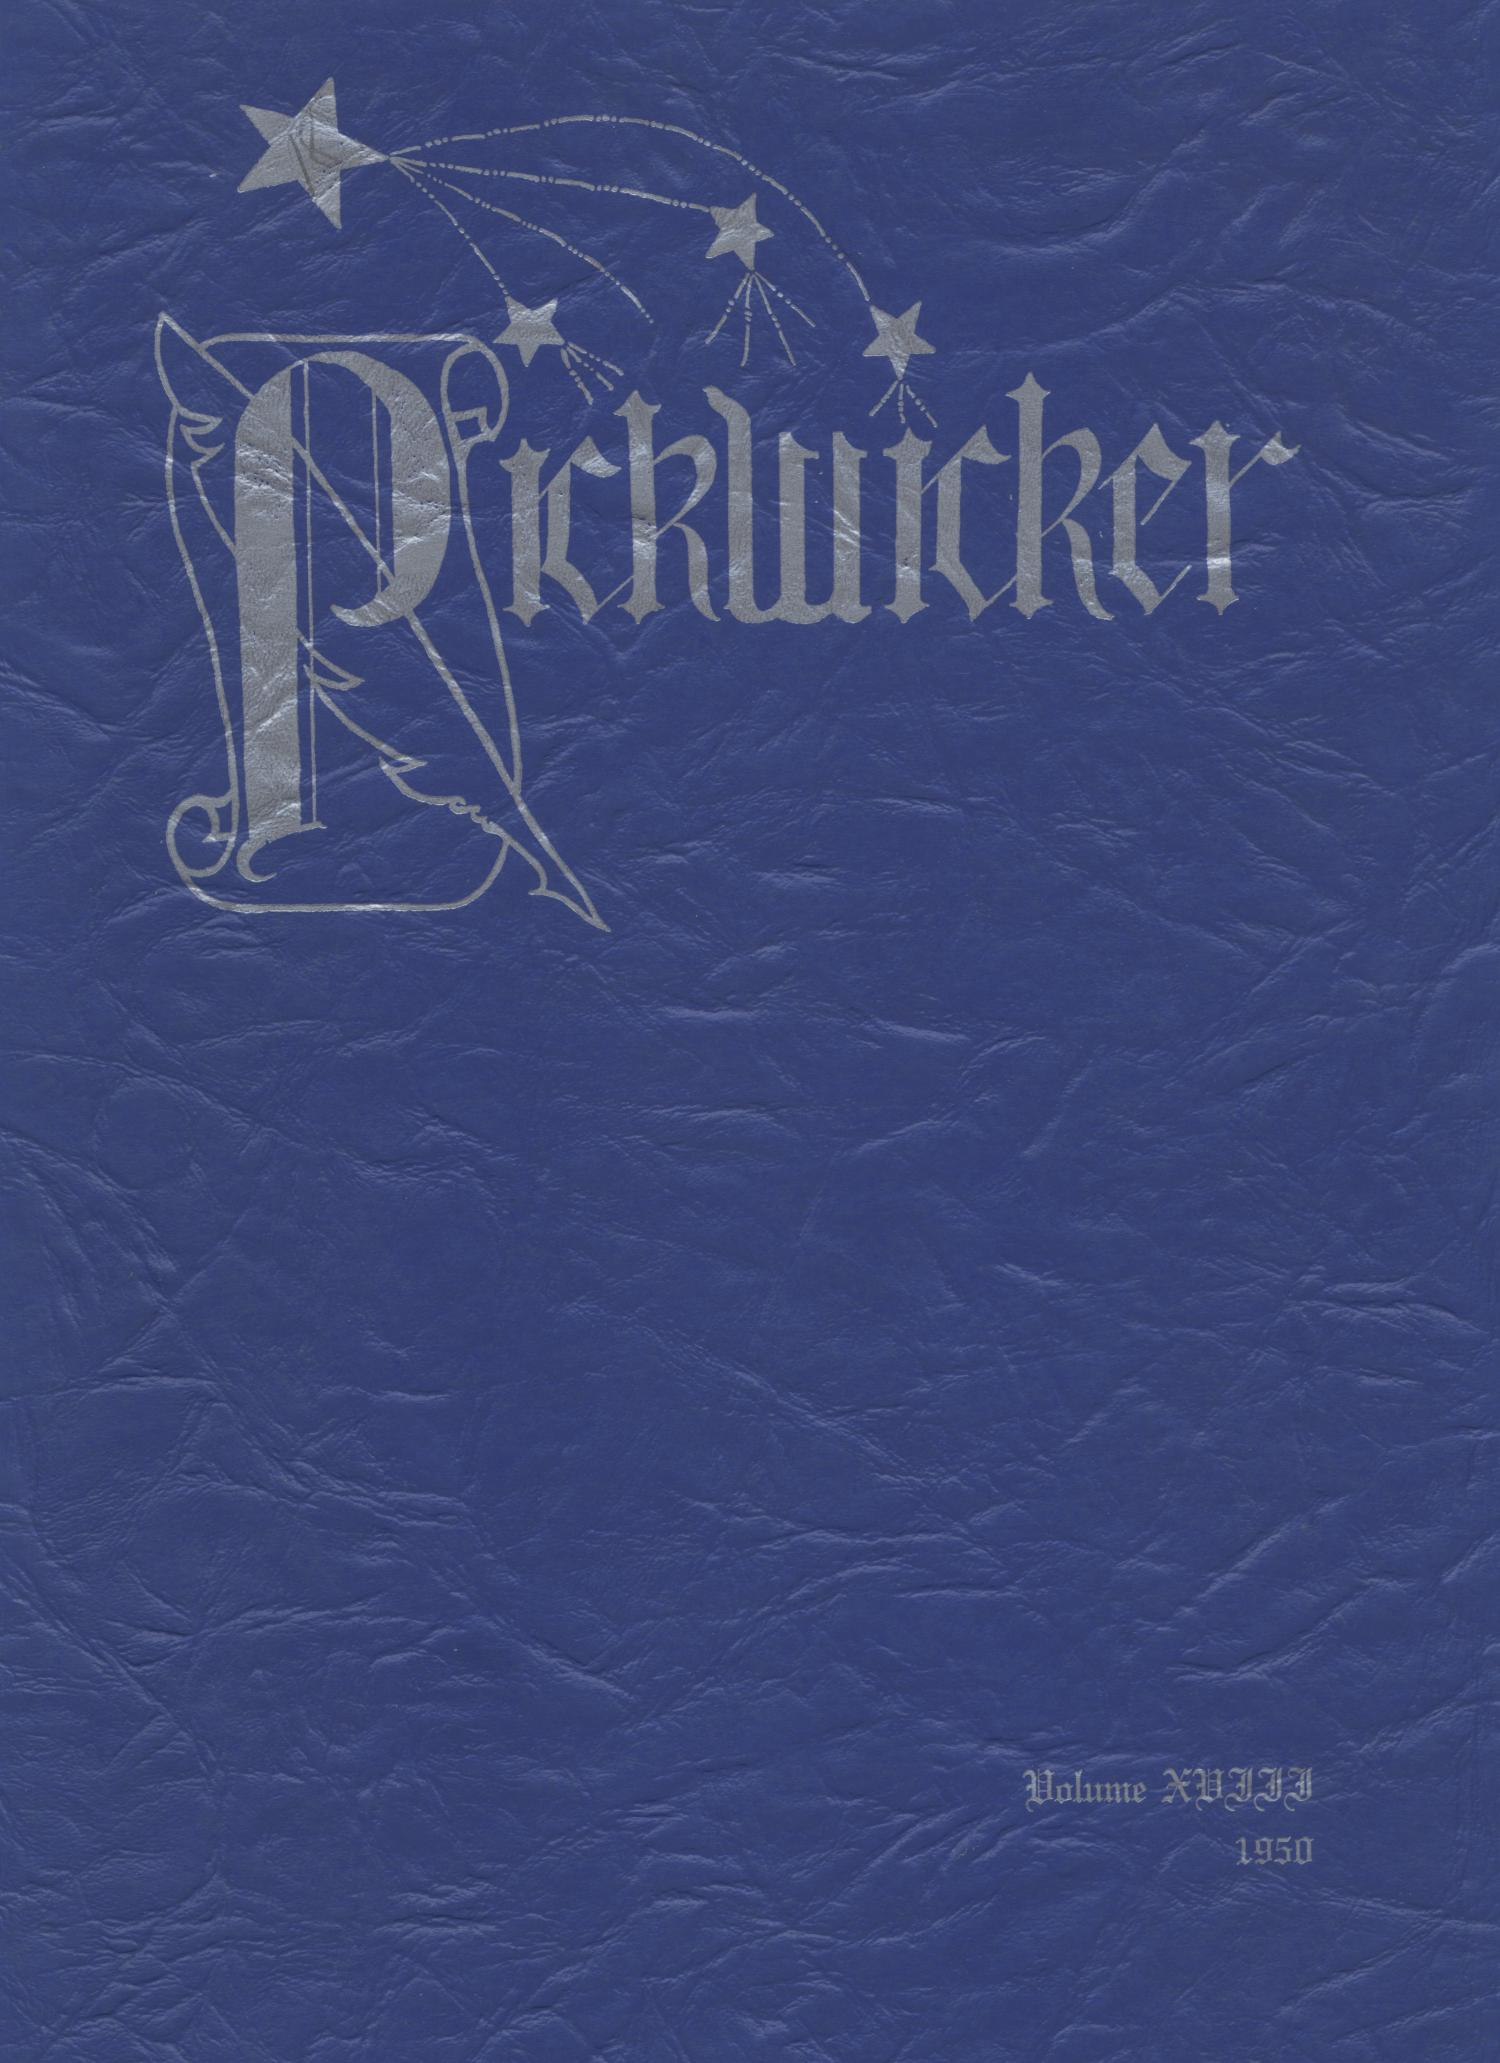 The Pickwicker, Volume 18, 1950                                                                                                      Front Cover